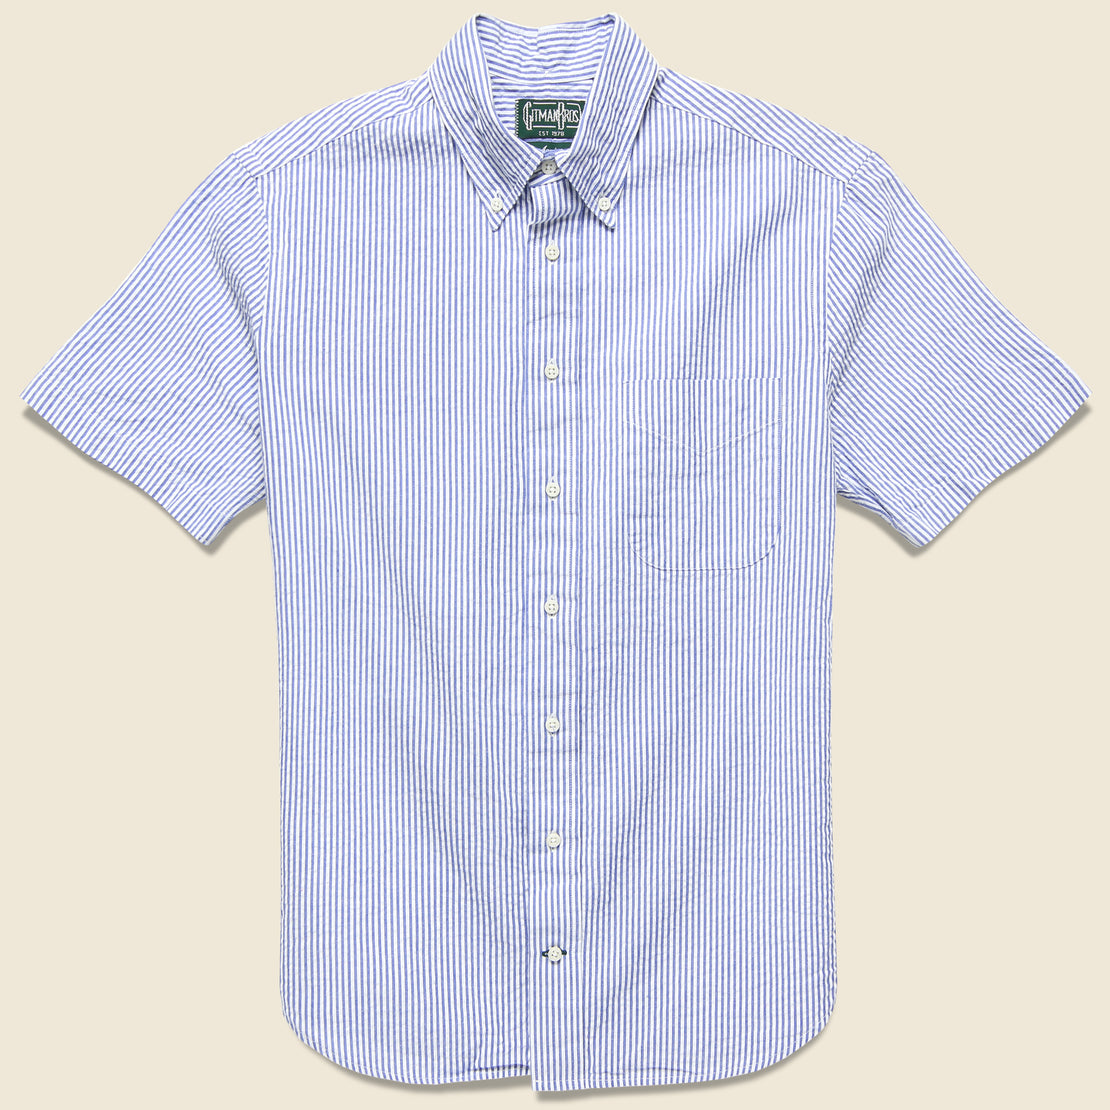 Gitman Vintage Seersucker Shirt - Blue/White Stripe